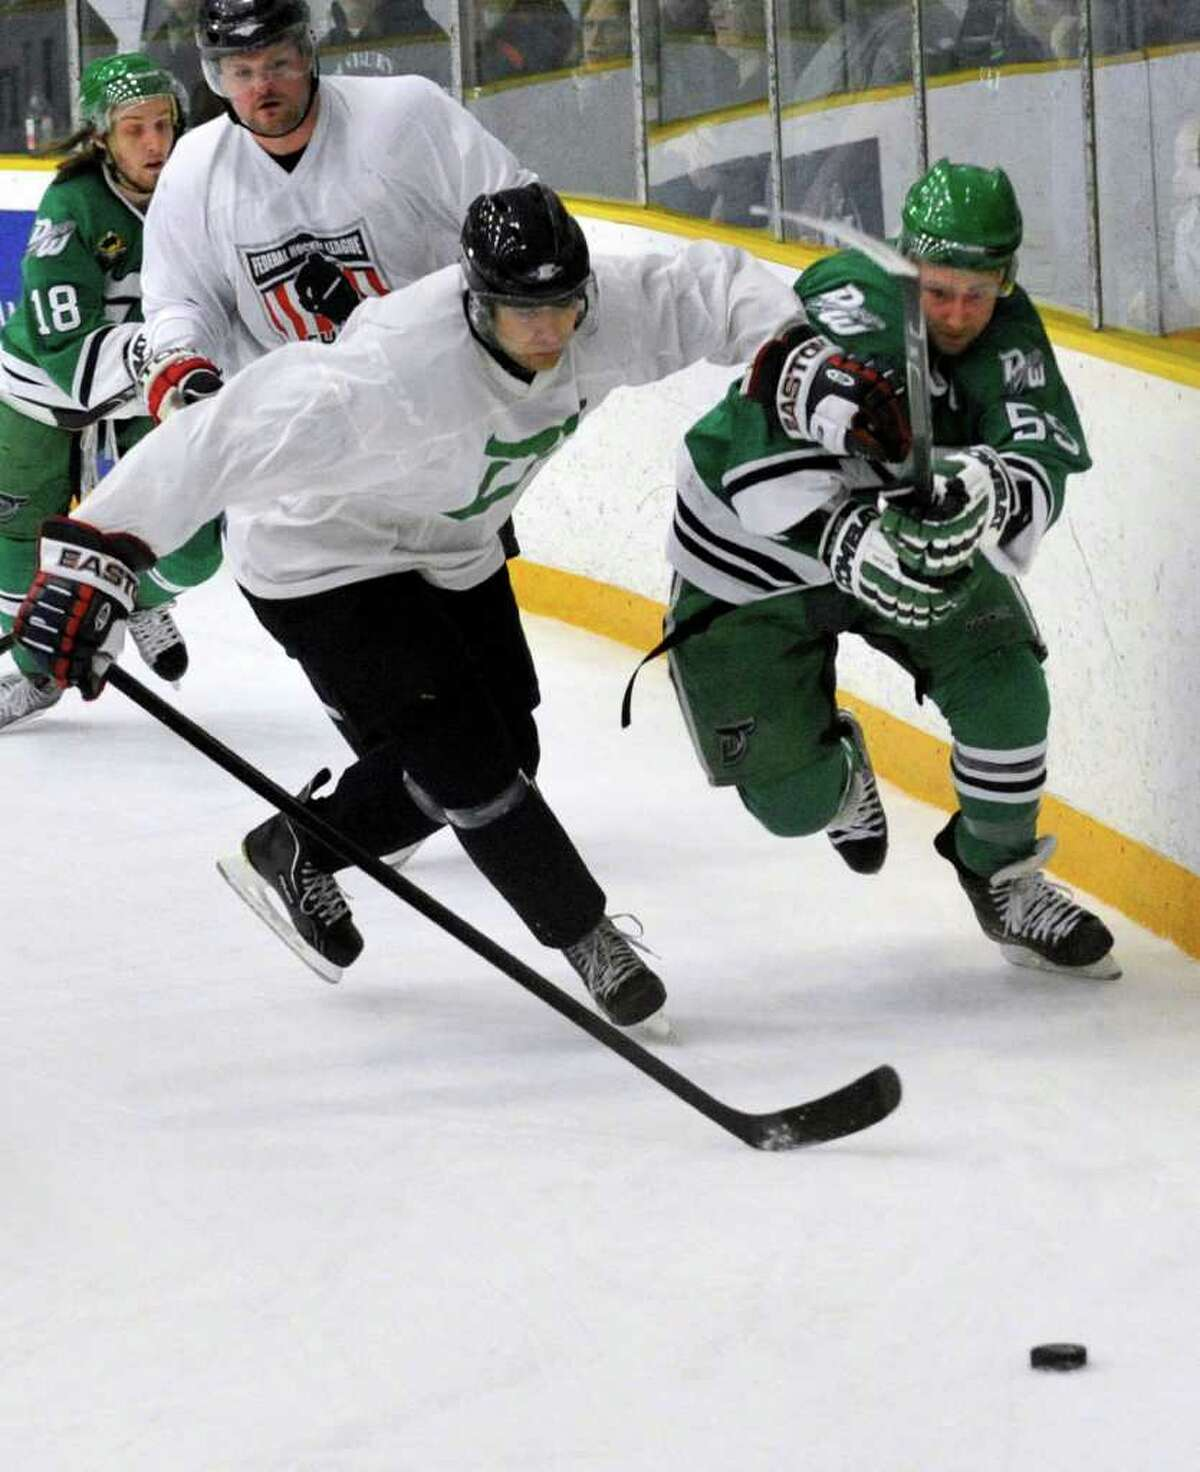 Danbury's James Sanford battles Delaware's Nicolas Katsiyianis for the puck during their game at Danbury Arena on Saturday, March 3, 2012.